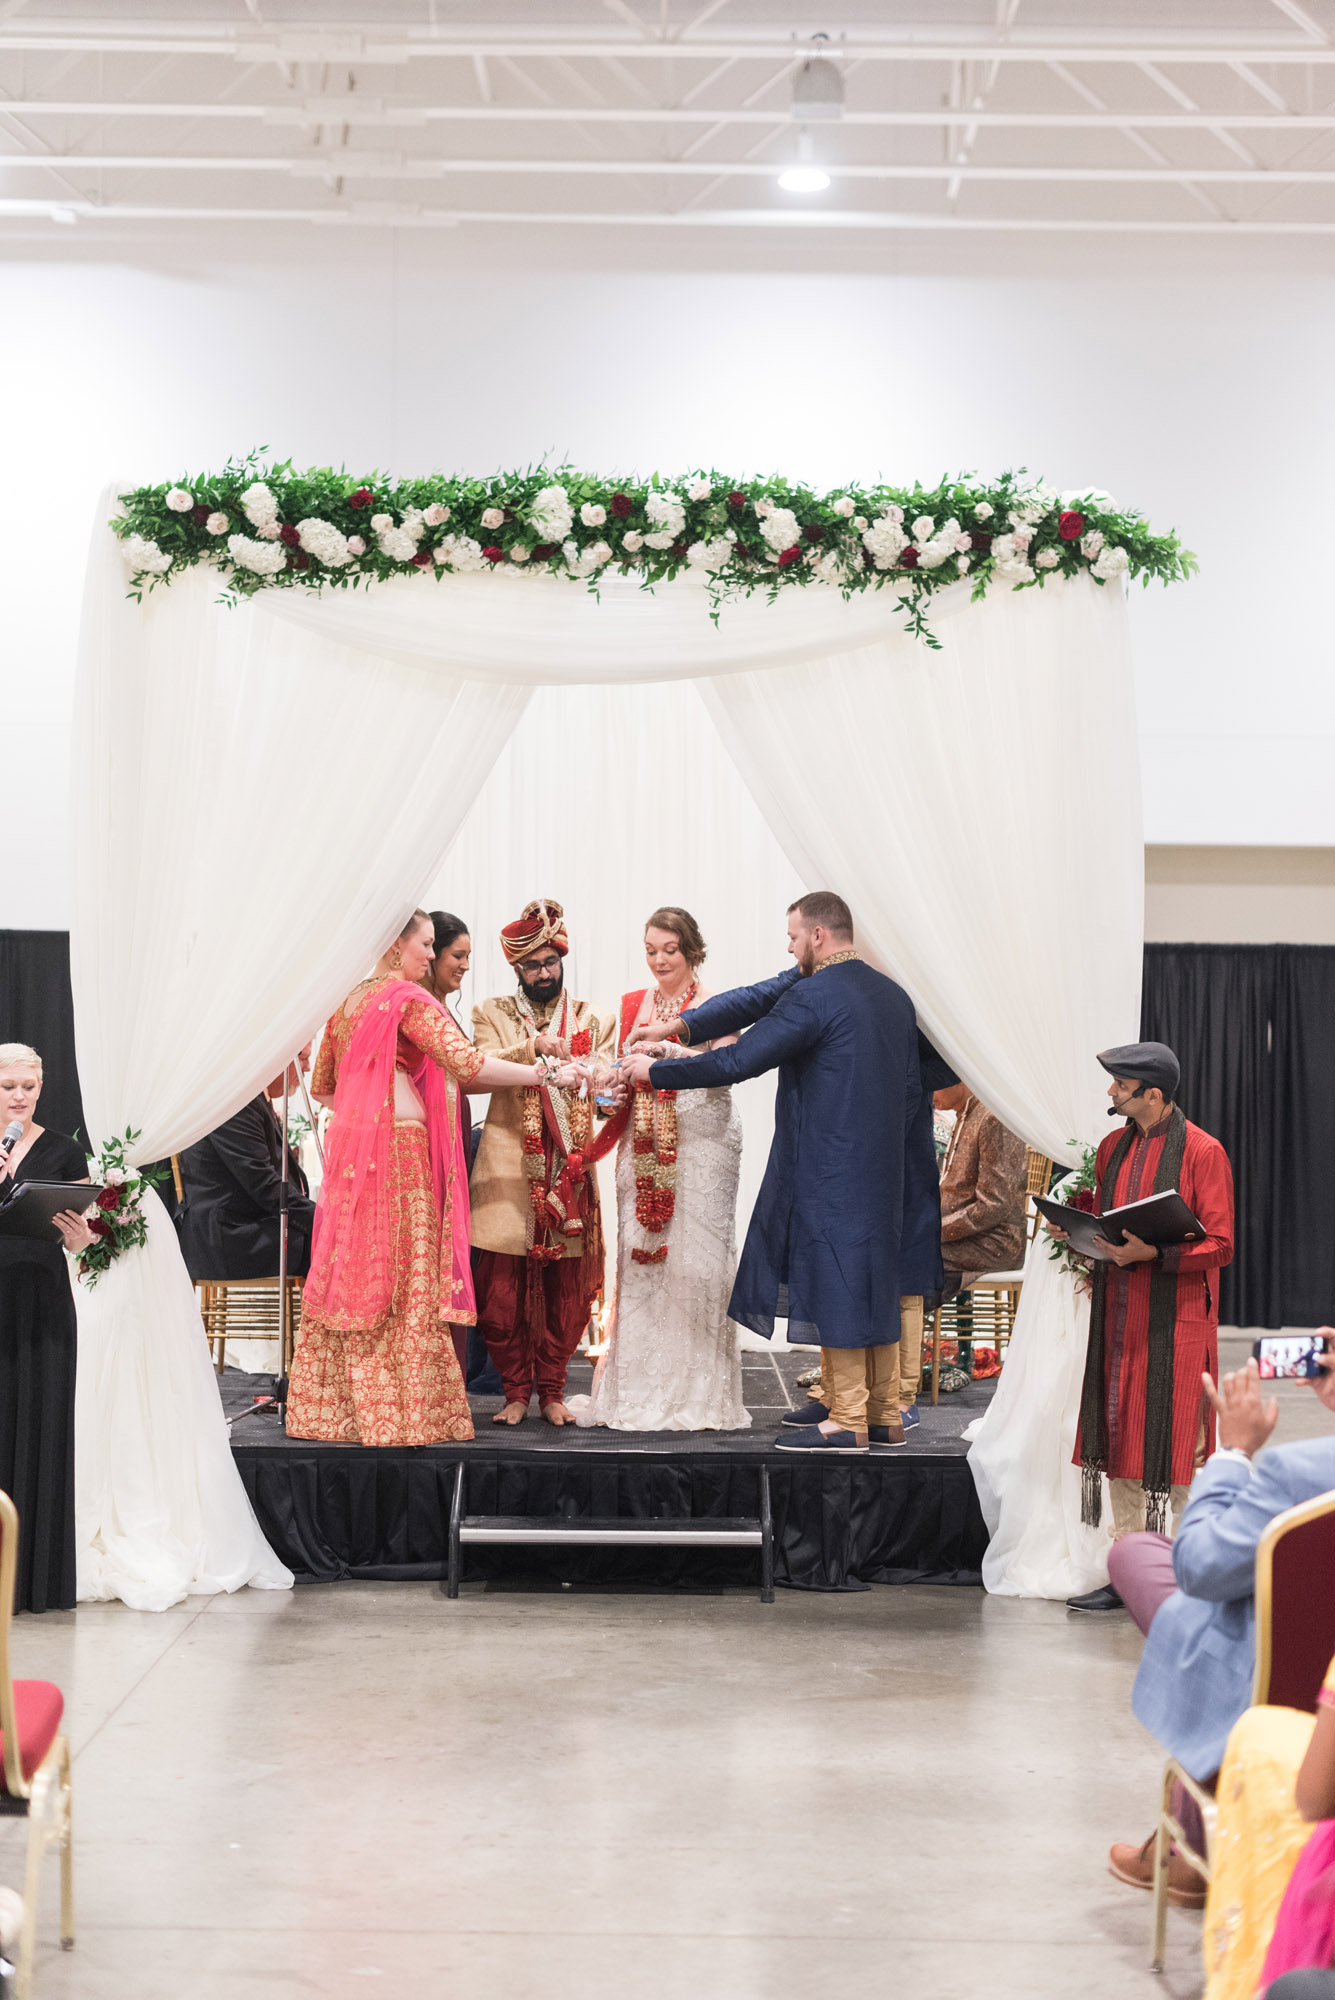 Indian Weddings, South Asian Weddings, and Cultural Fusion Weddings